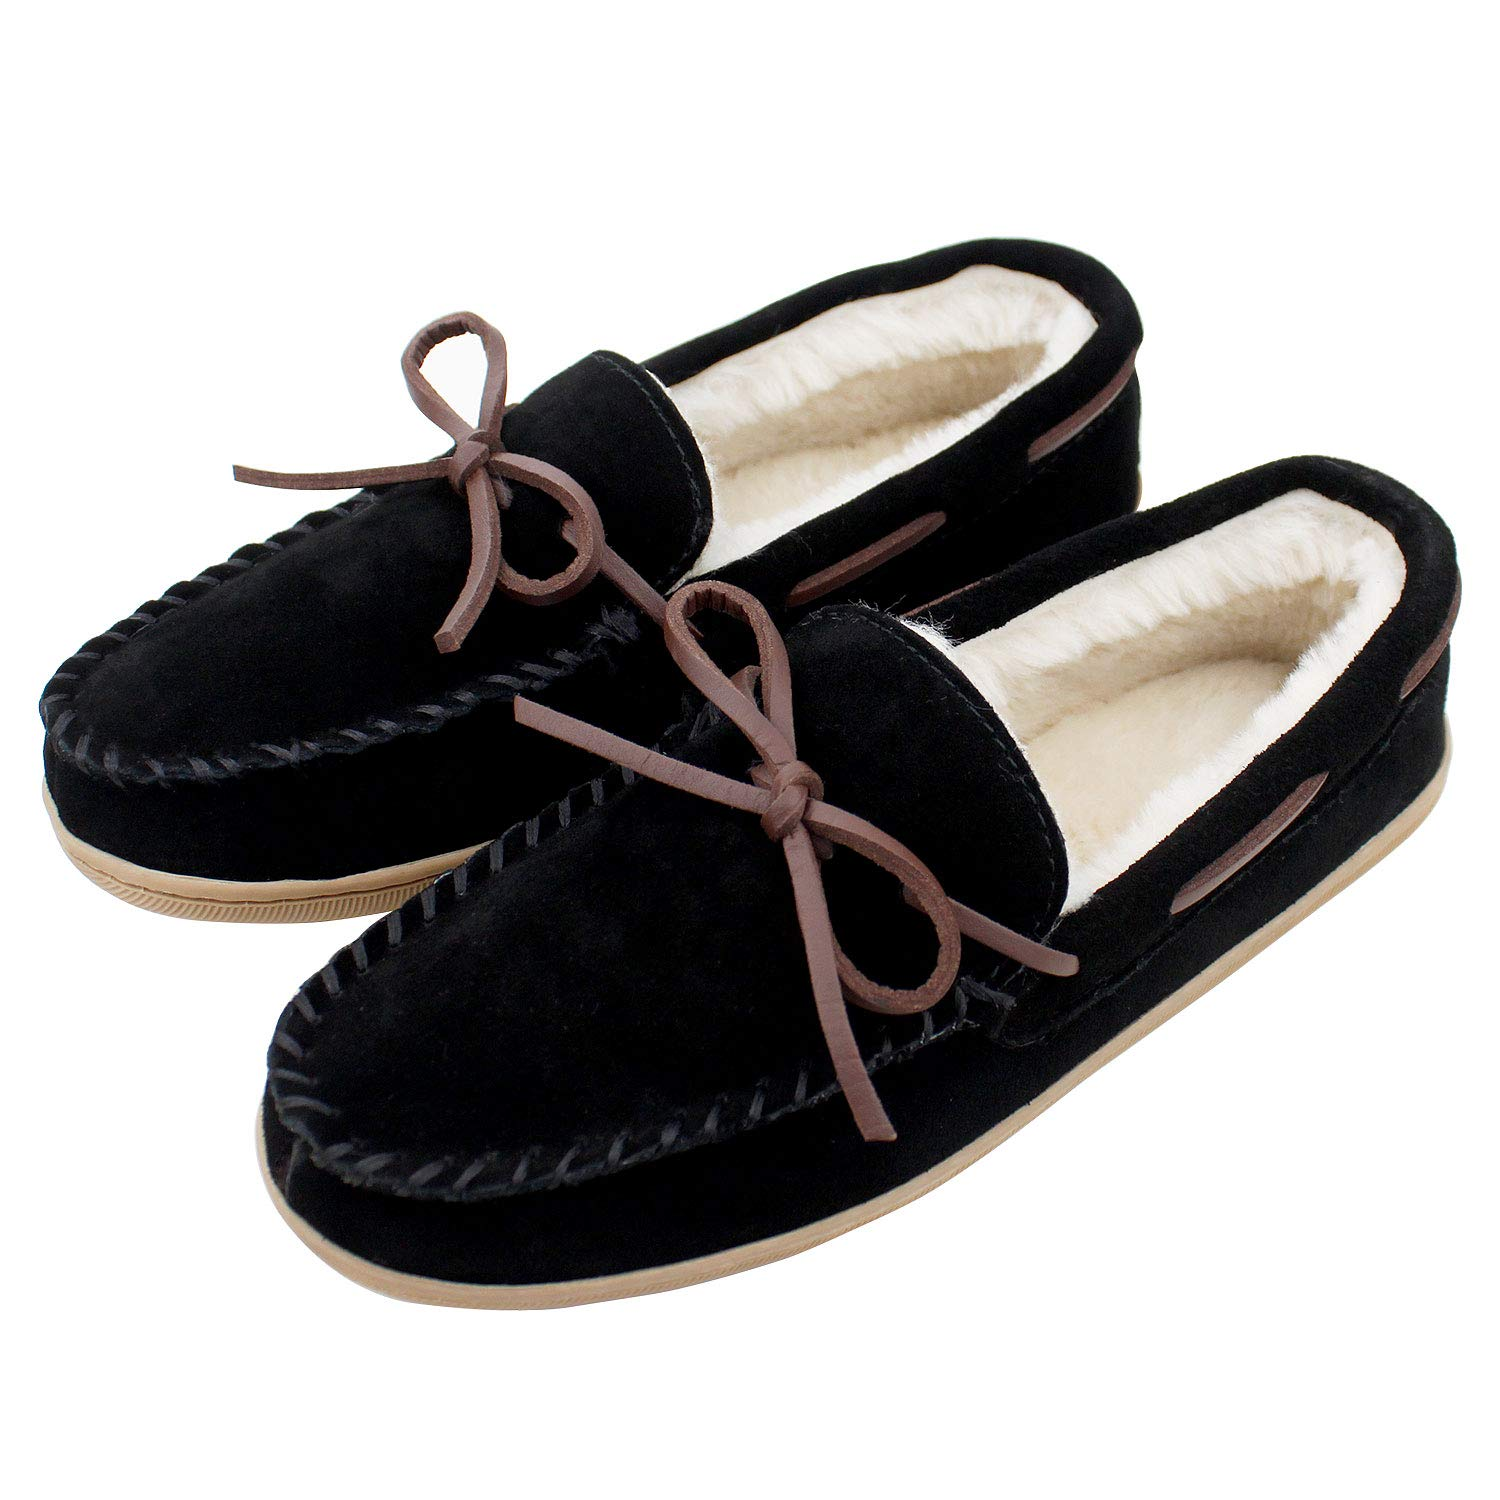 Moccasins Sheepskin Slippers for Men Memory Foam Breathable Ourdoor Indoor Suede Slip on House Shoes with Fuzzy Plush Faux Fur Lining Hoswo Mens Slippers